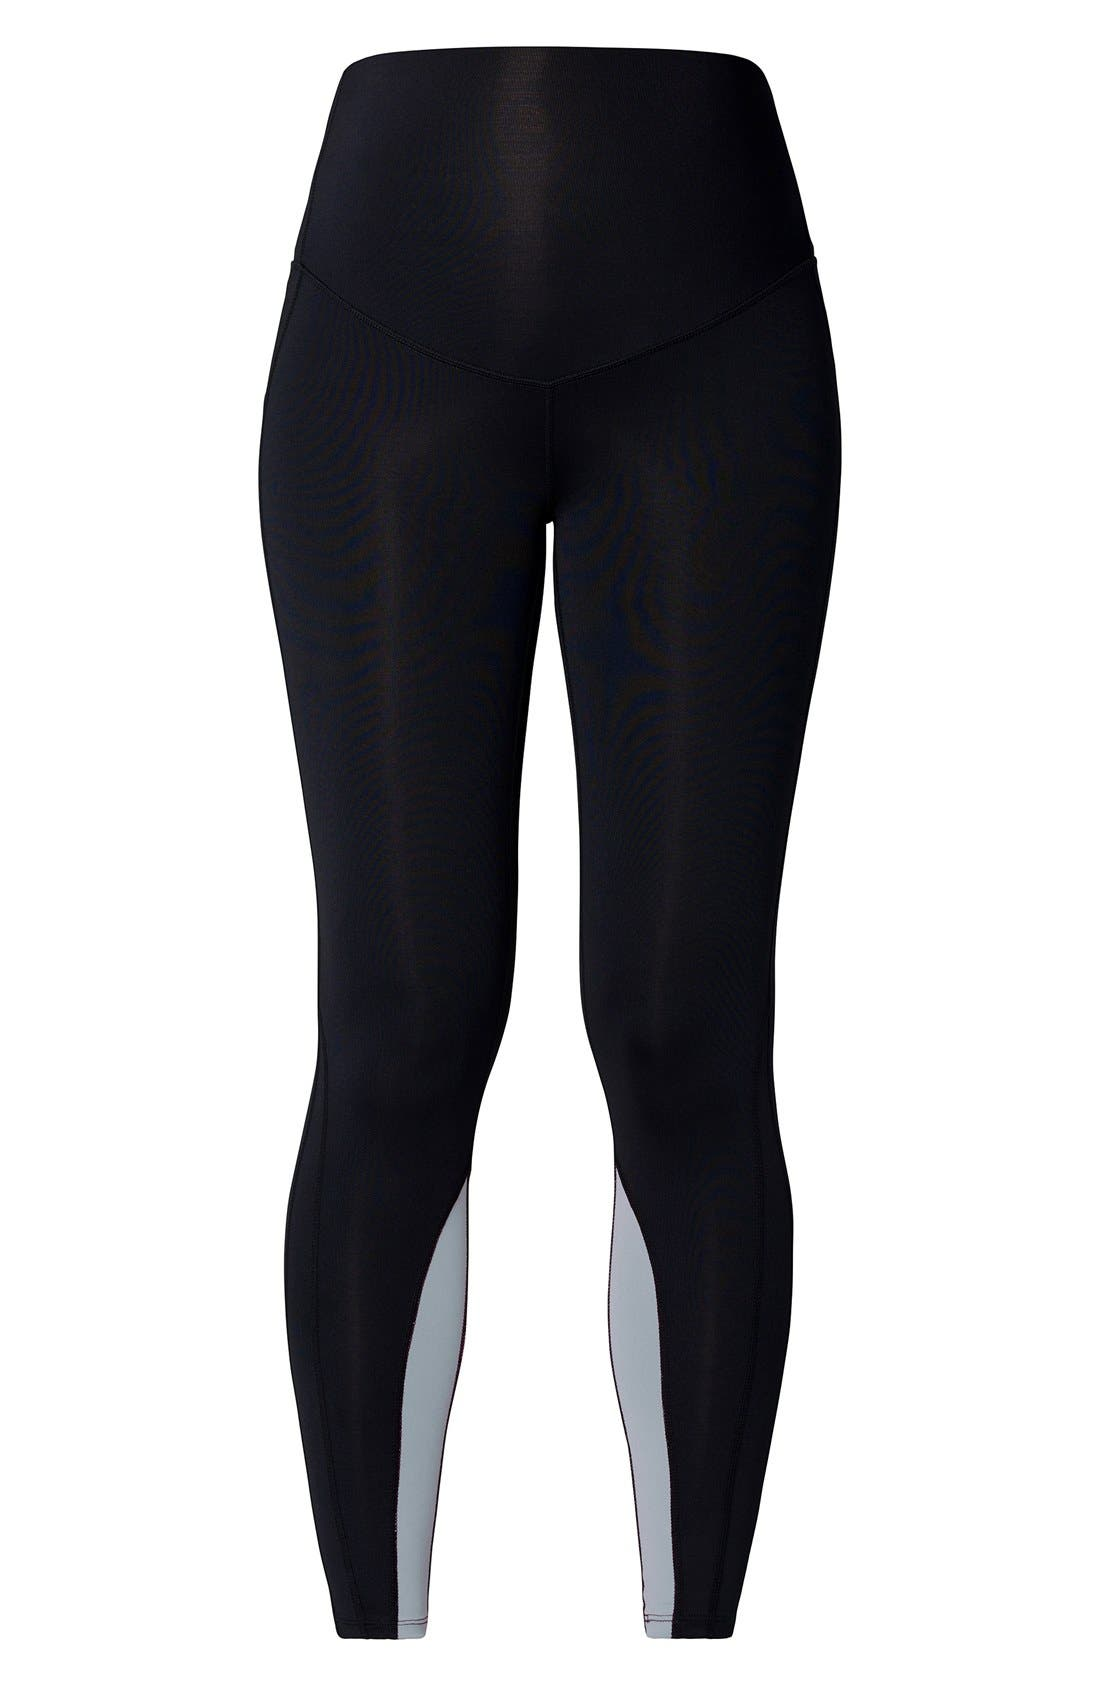 Over the Belly Maternity Sport Leggings,                         Main,                         color, BLACK